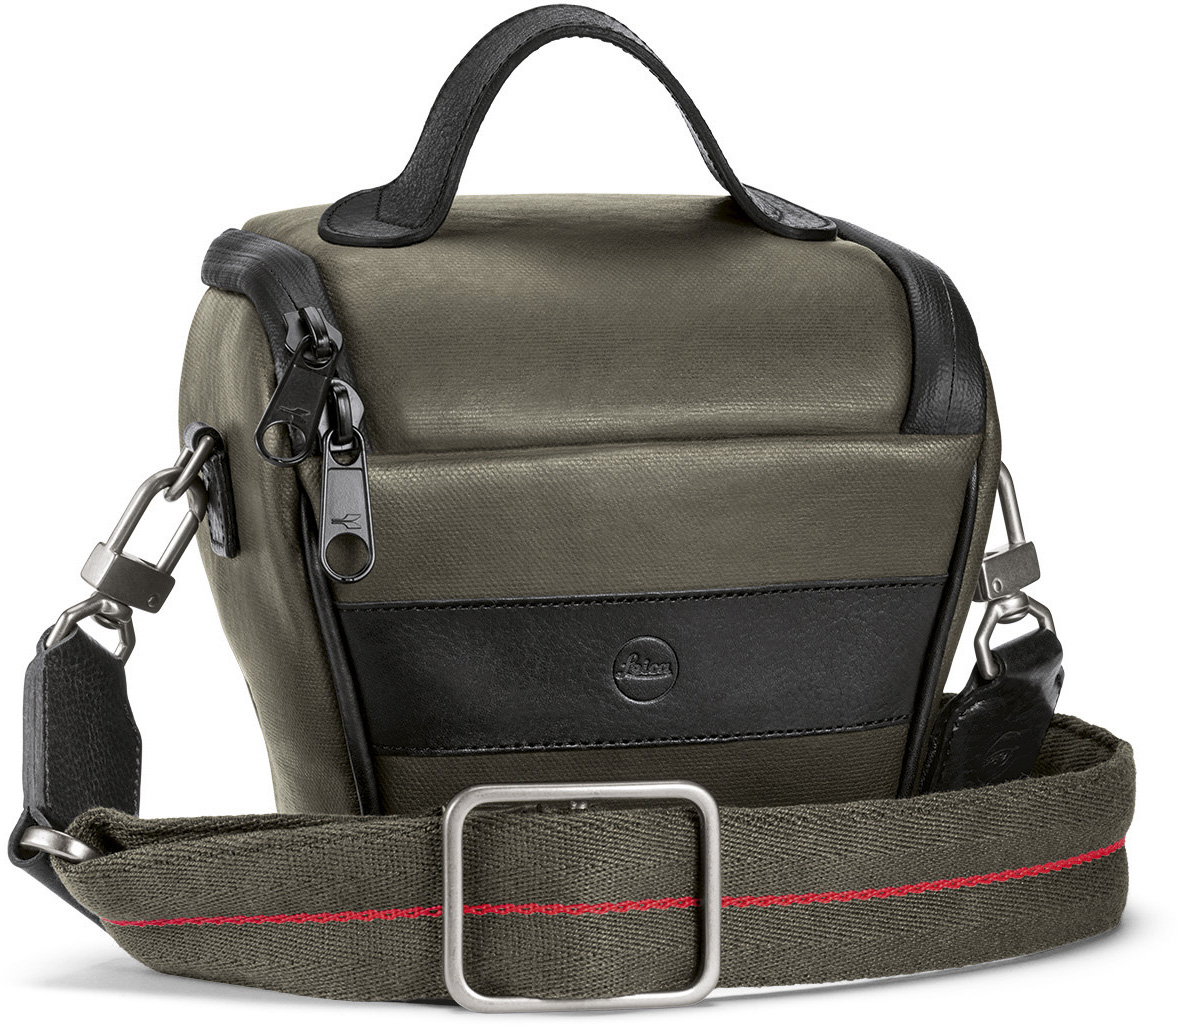 Leica Ettas Camera Bag